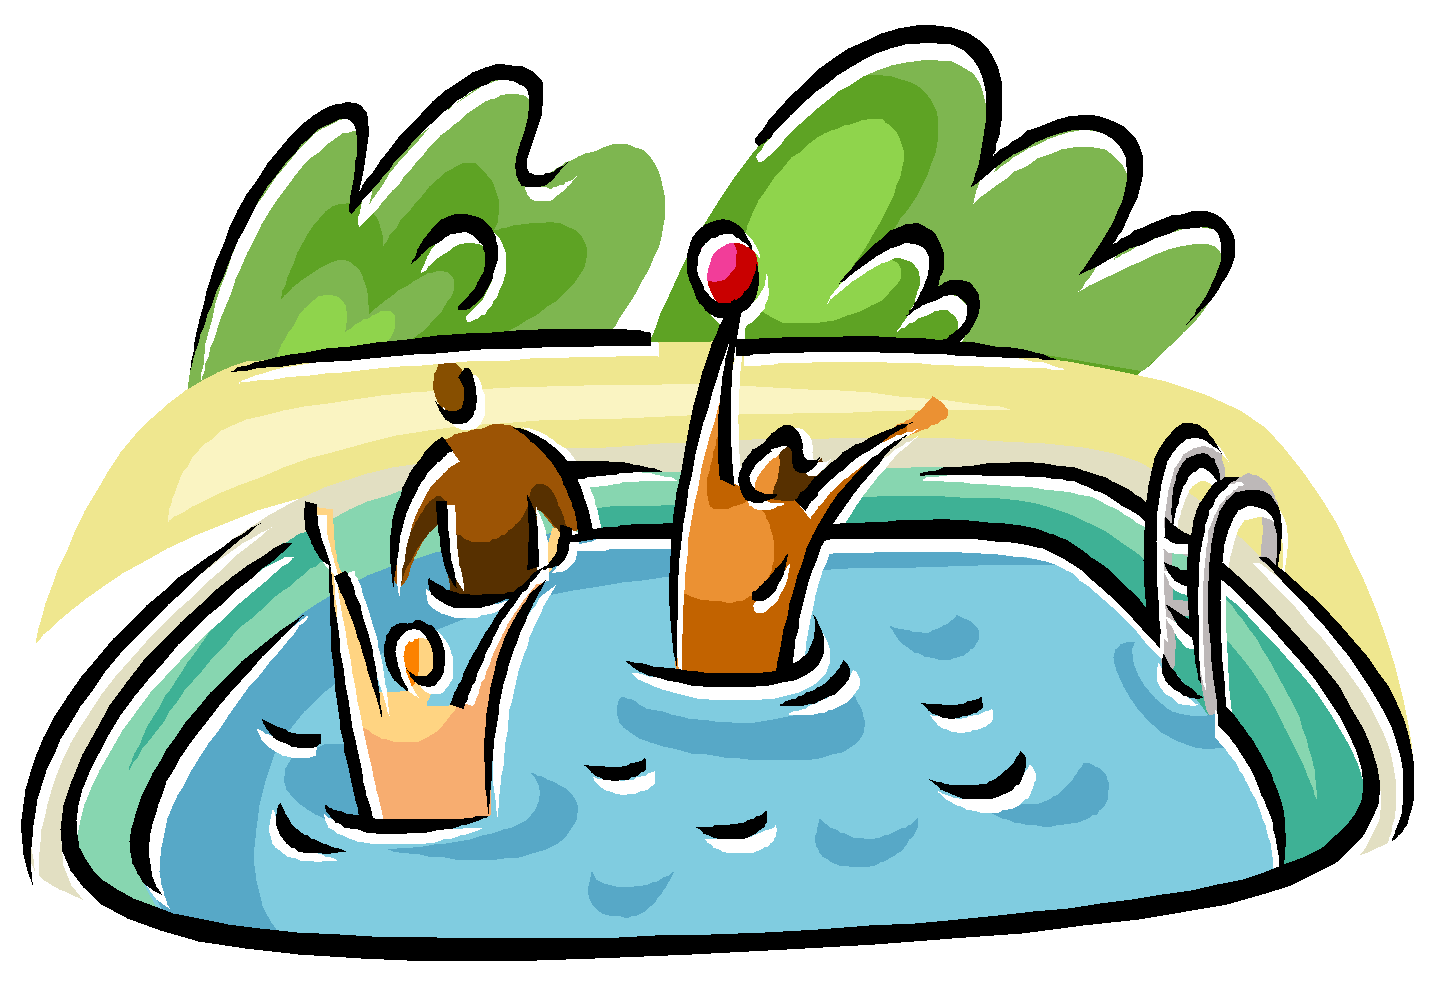 Swimming In A Pool Clipart Clipart Best-Swimming In A Pool Clipart Clipart Best-1